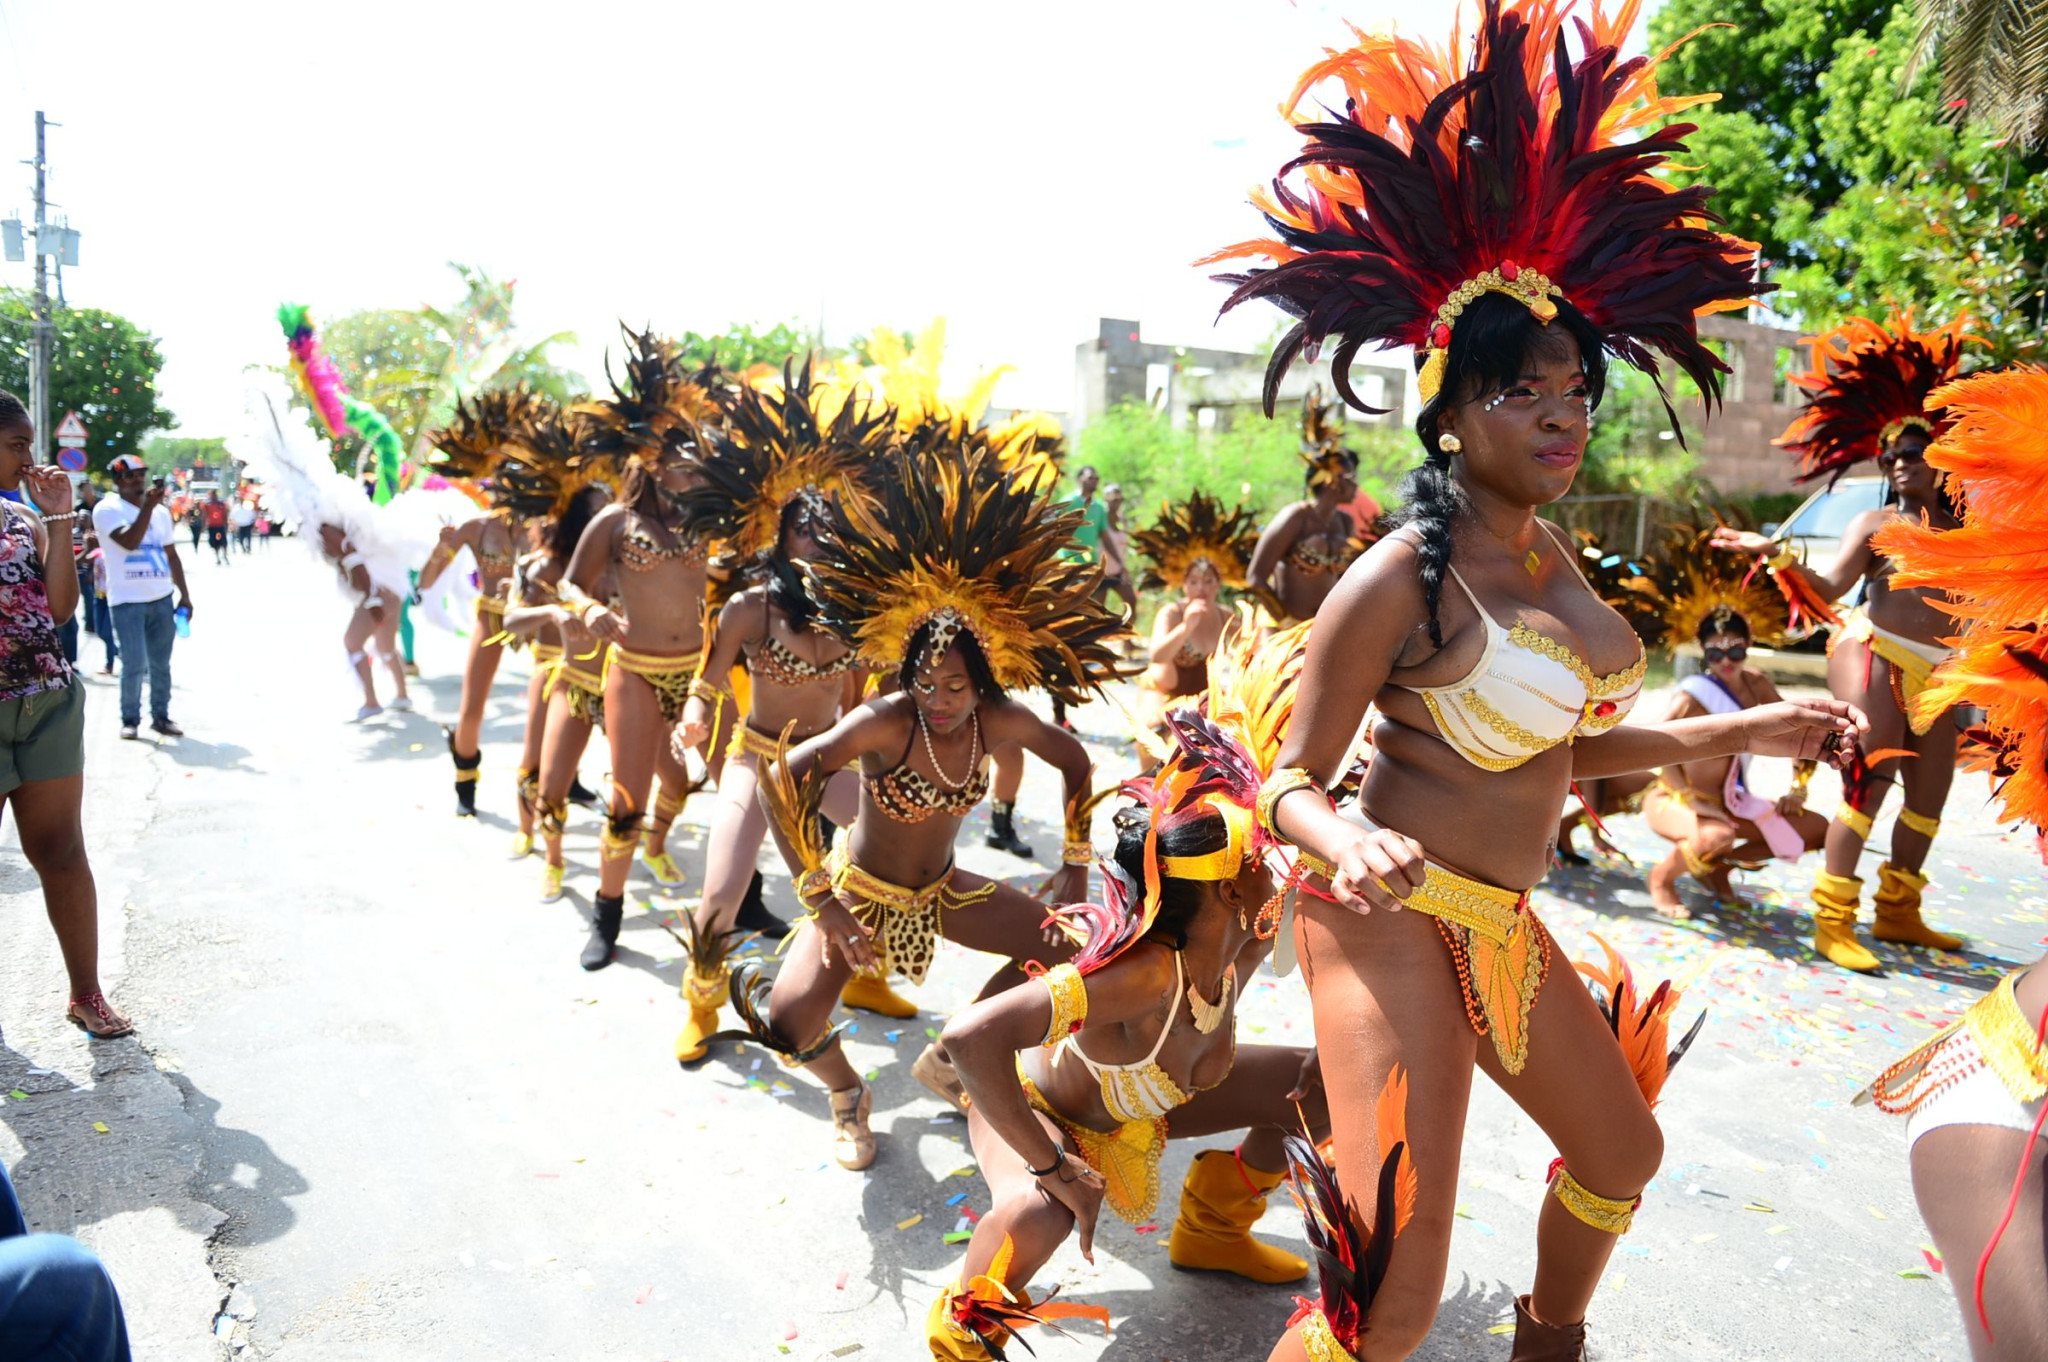 What We Missed At Anguilla Summer Festival 2013: Uncommon Envy